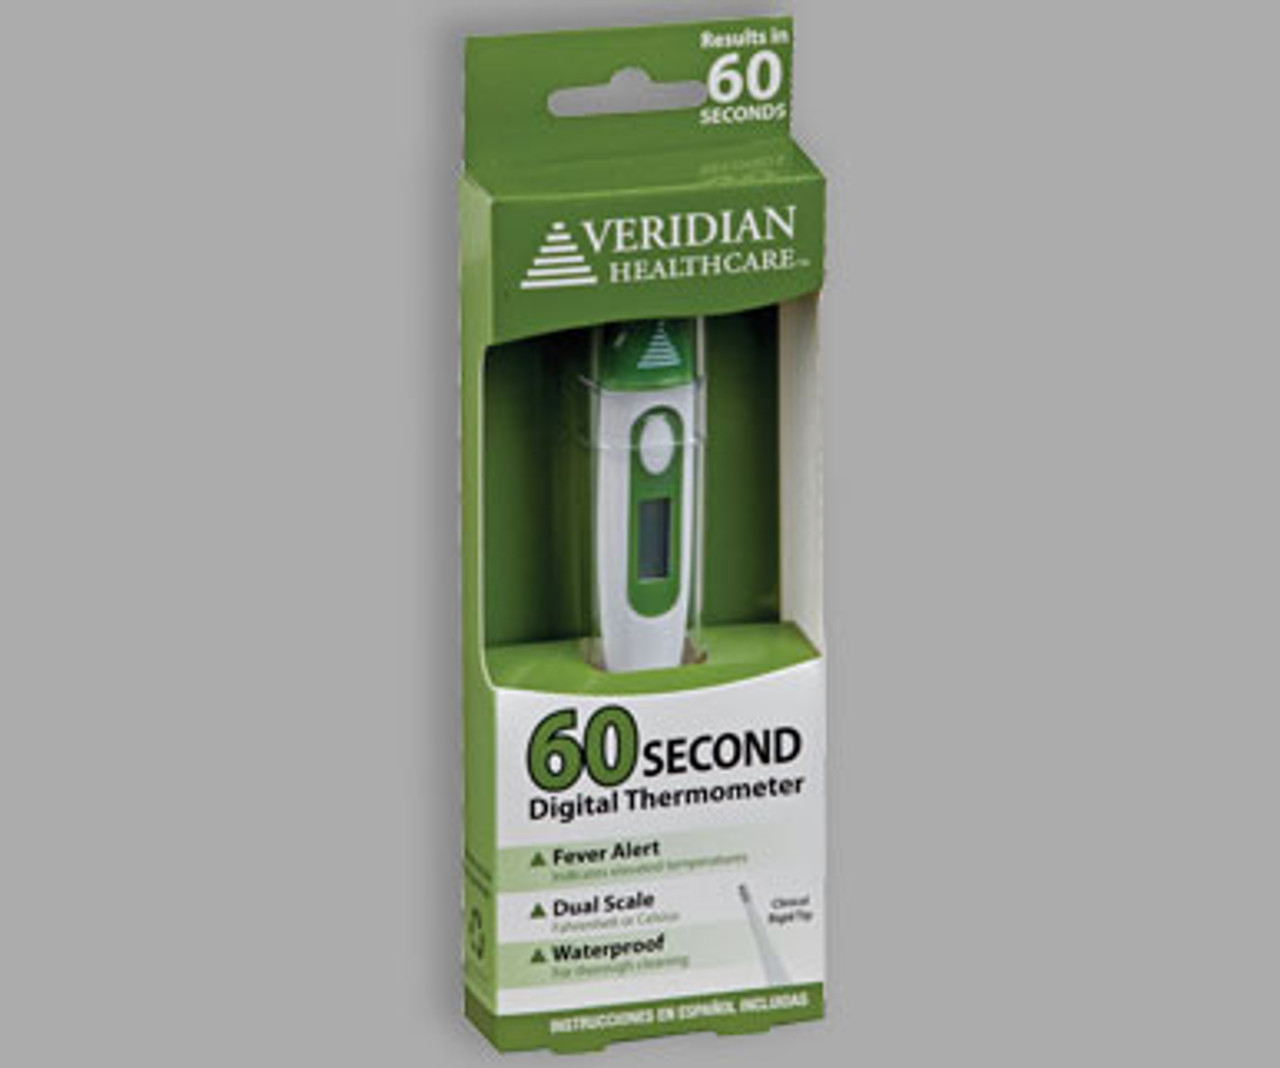 Veridian Healthcare 60 Second Digital Thermometer